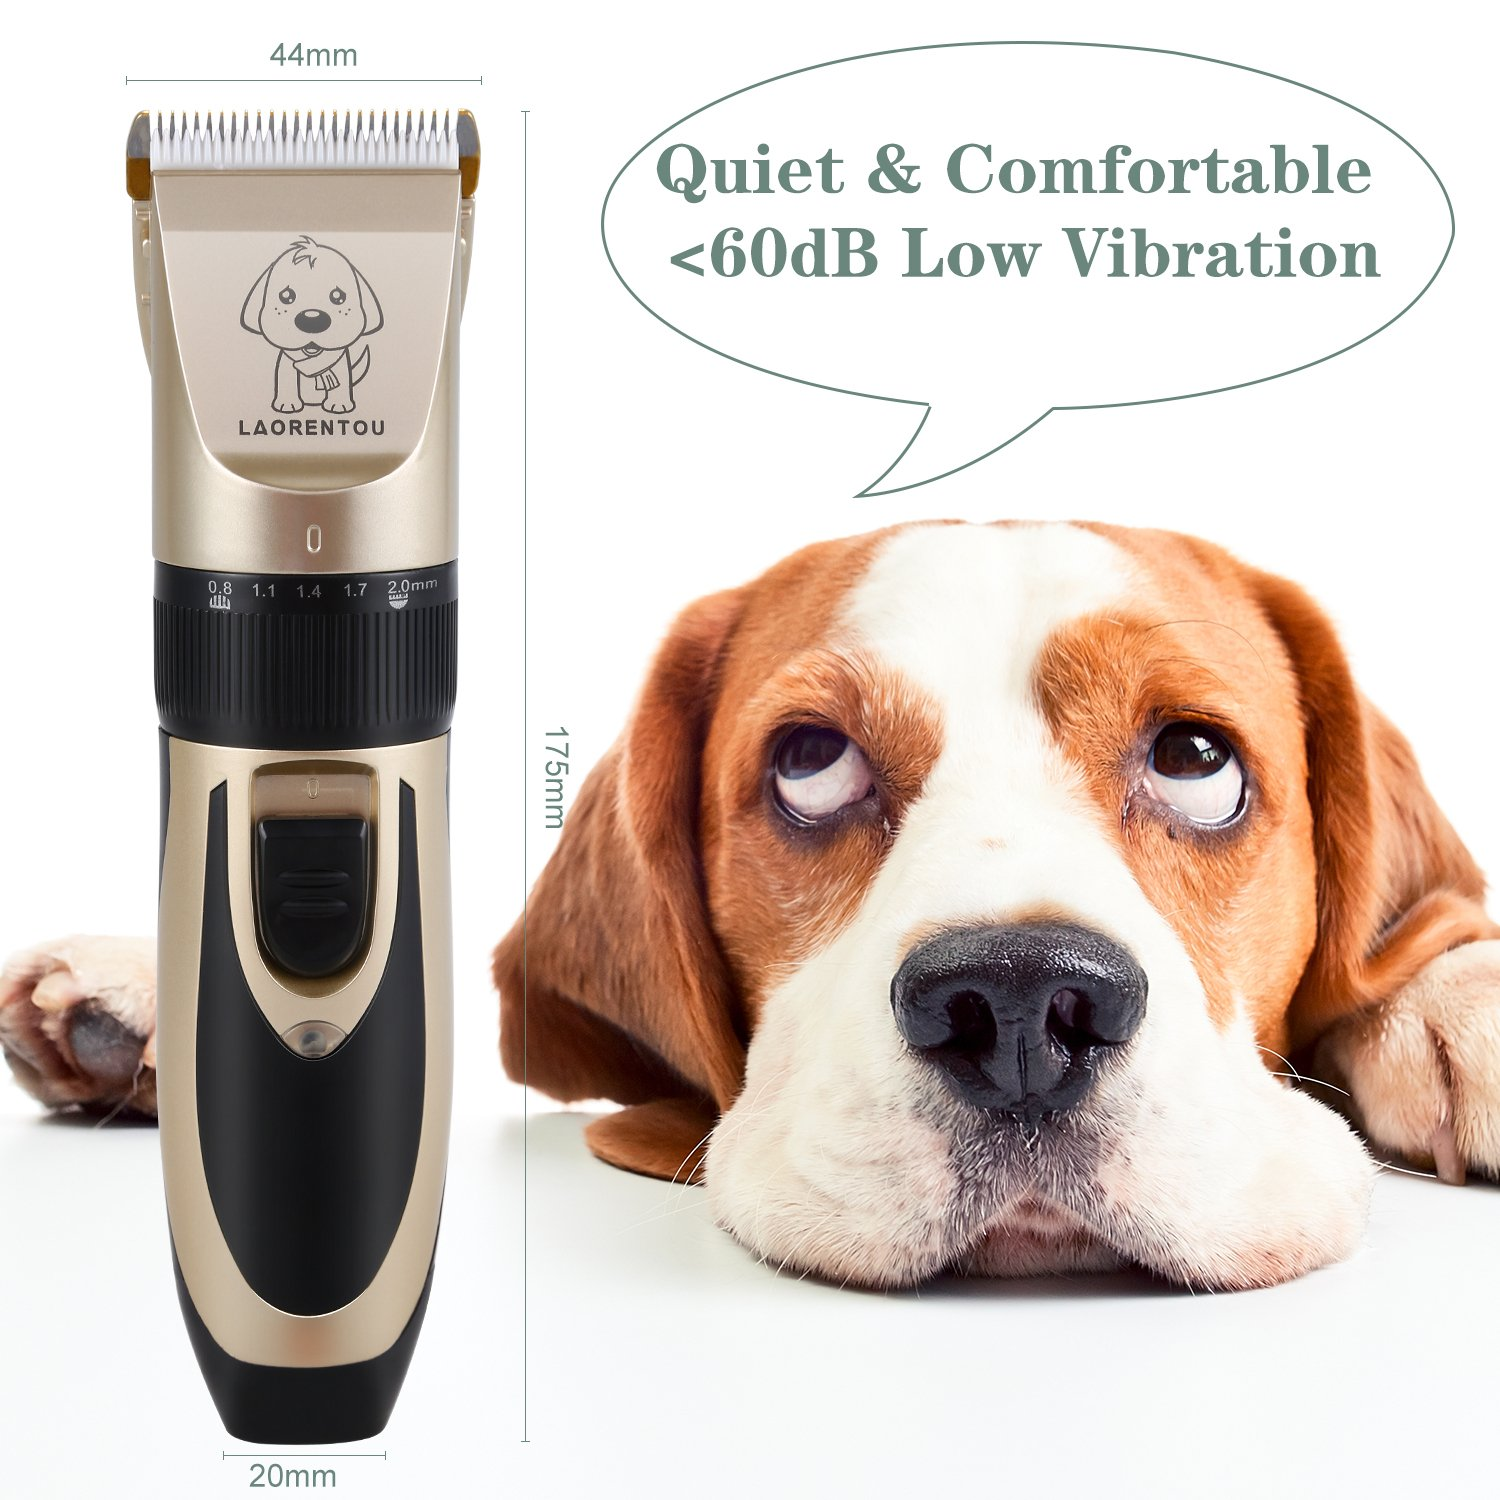 AFBEST Dog Grooming Clippers Low Noise Rechargeable Cordless Pet Clippers,Professional Dog Hair Trimmer Grooming Kit with 4 Guide Combs and Cleaning Brush Nail Kits for Dogs Cats and Any Animals